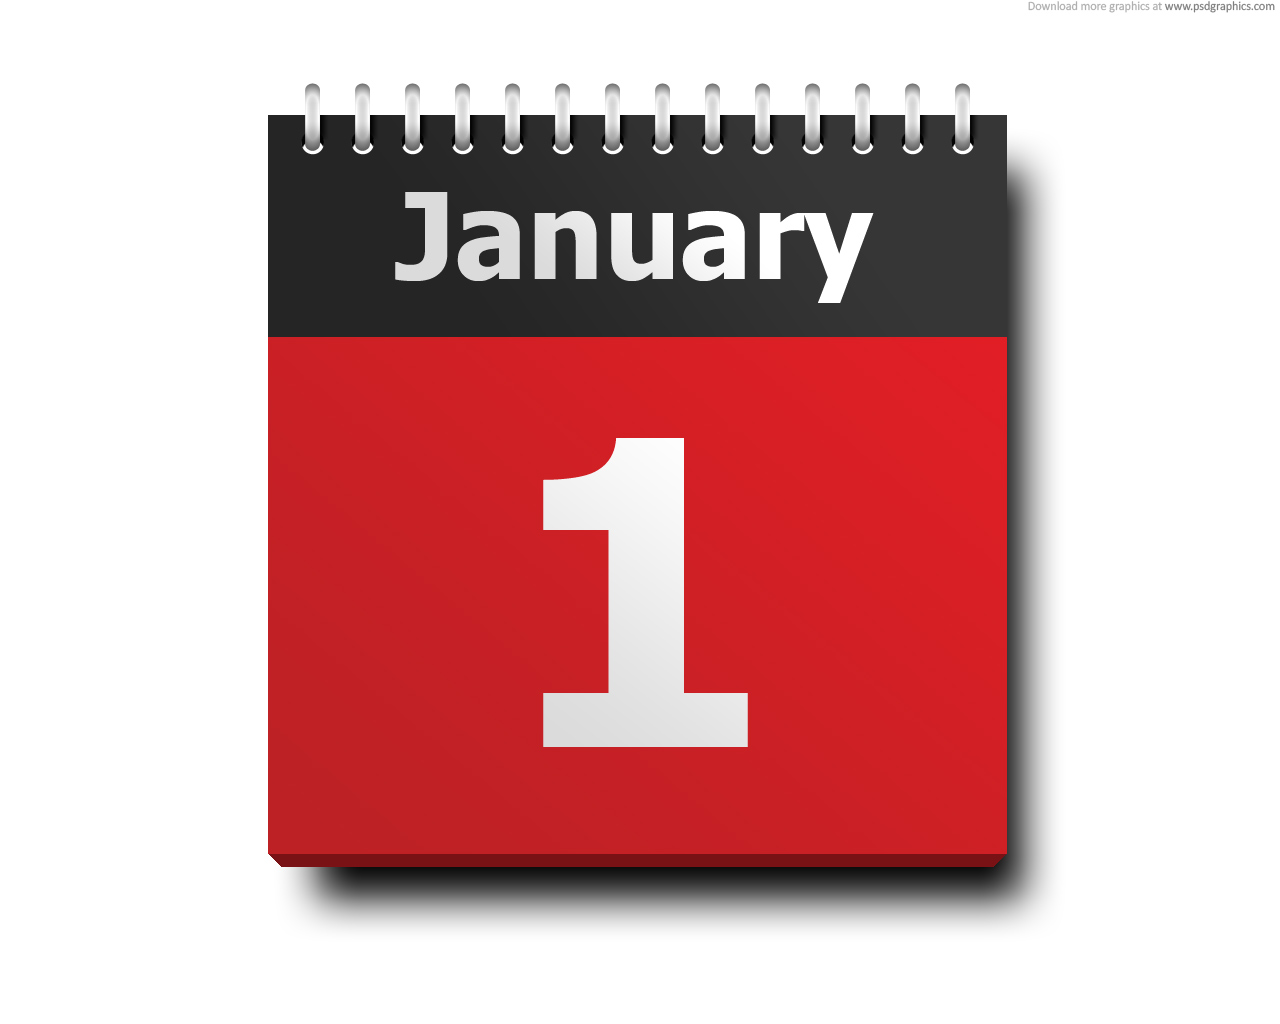 January 1 Calendar Icon Psdgraphics